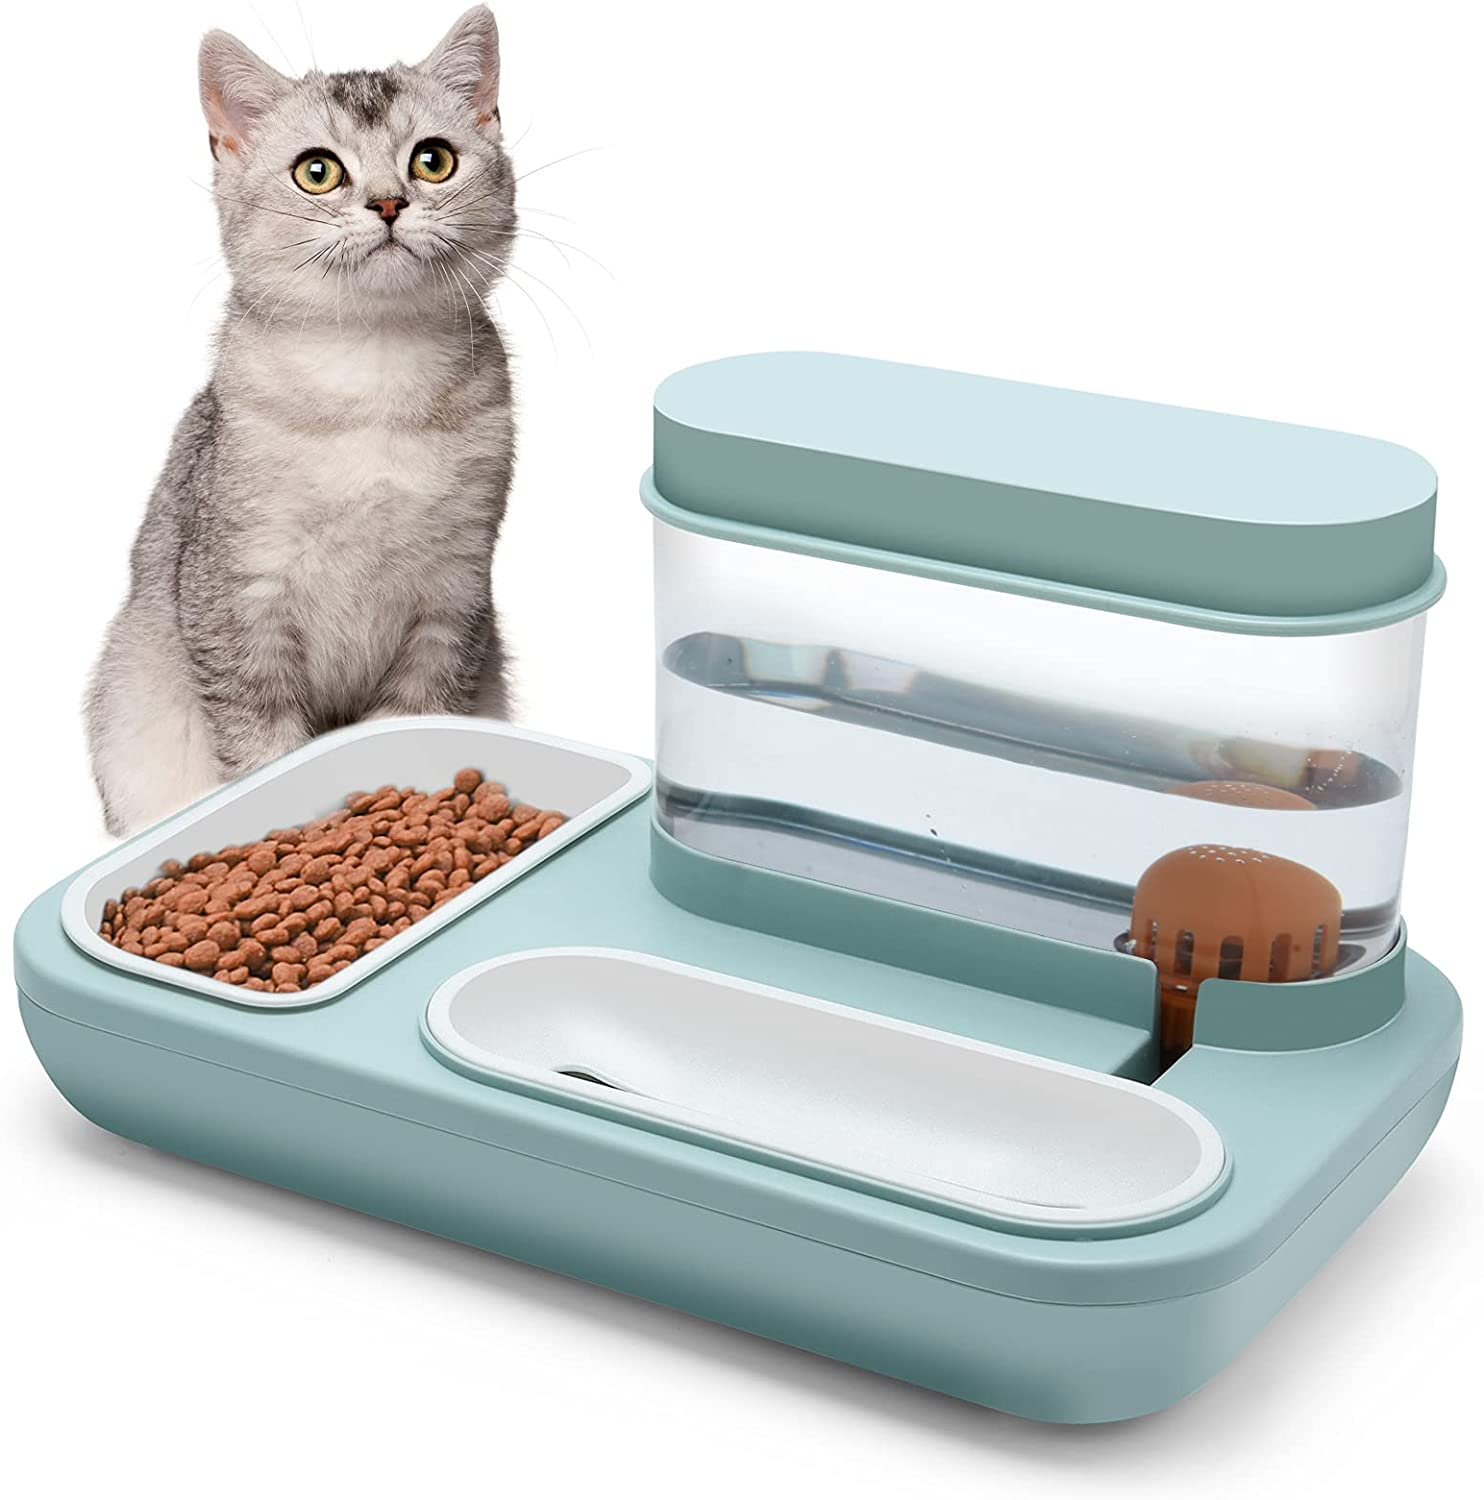 BOWINR Cats Water Gravity Dispenser 1500ml Cat Bowls for Food and Water Double Bowls Detachable Anti Spill Non Slip Base Stable Premium for Dog Puppy Pet Separation Design Automatic Waterer Bowl(Blue)